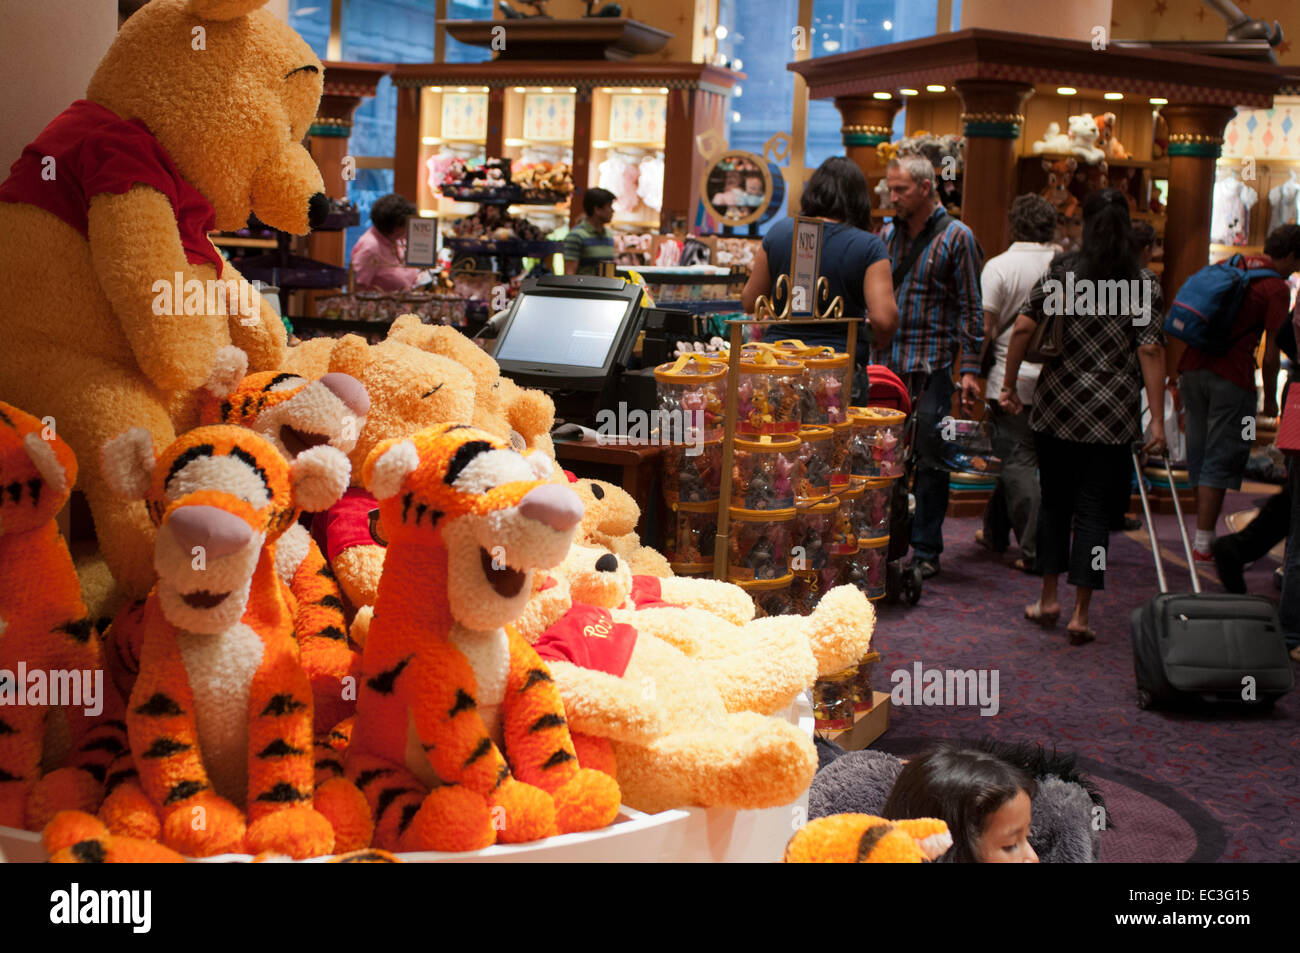 3cf282d7b1d8 Inside Disney store in New York. Winnie the pooh toys and teddies. Disney  Store s New York